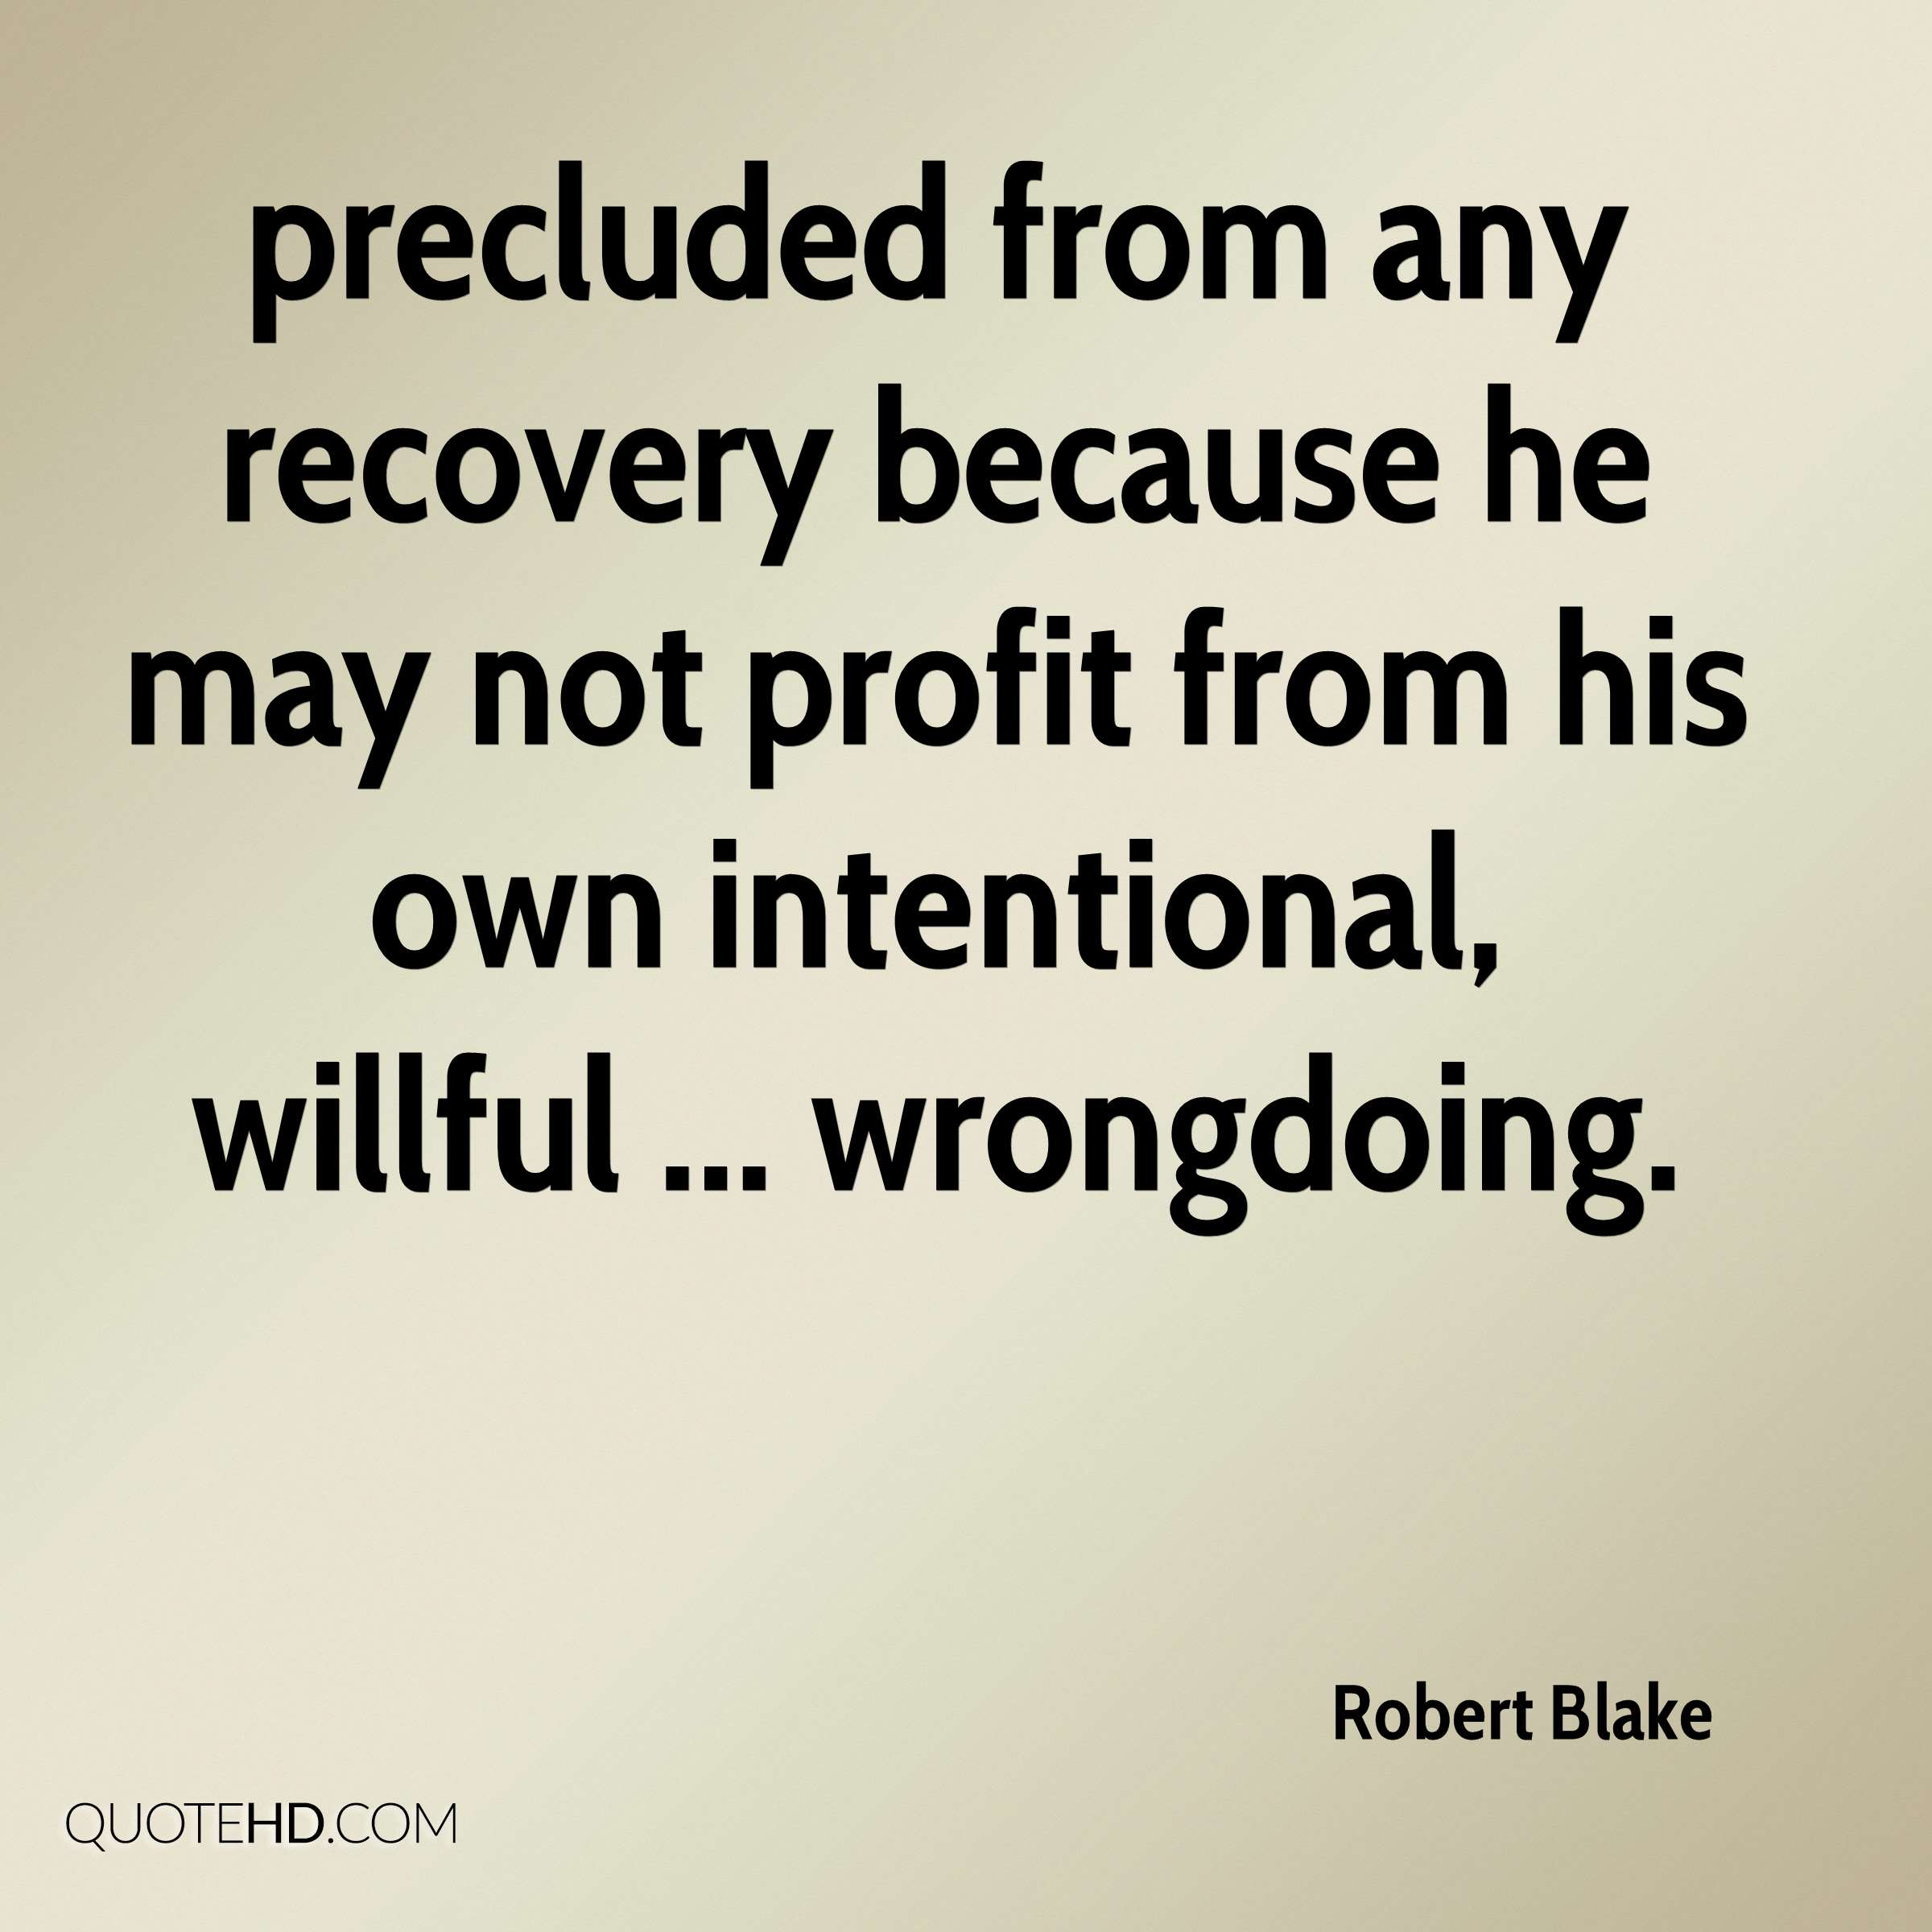 Quotes About Recovery Robert Blake Quotes  Quotehd